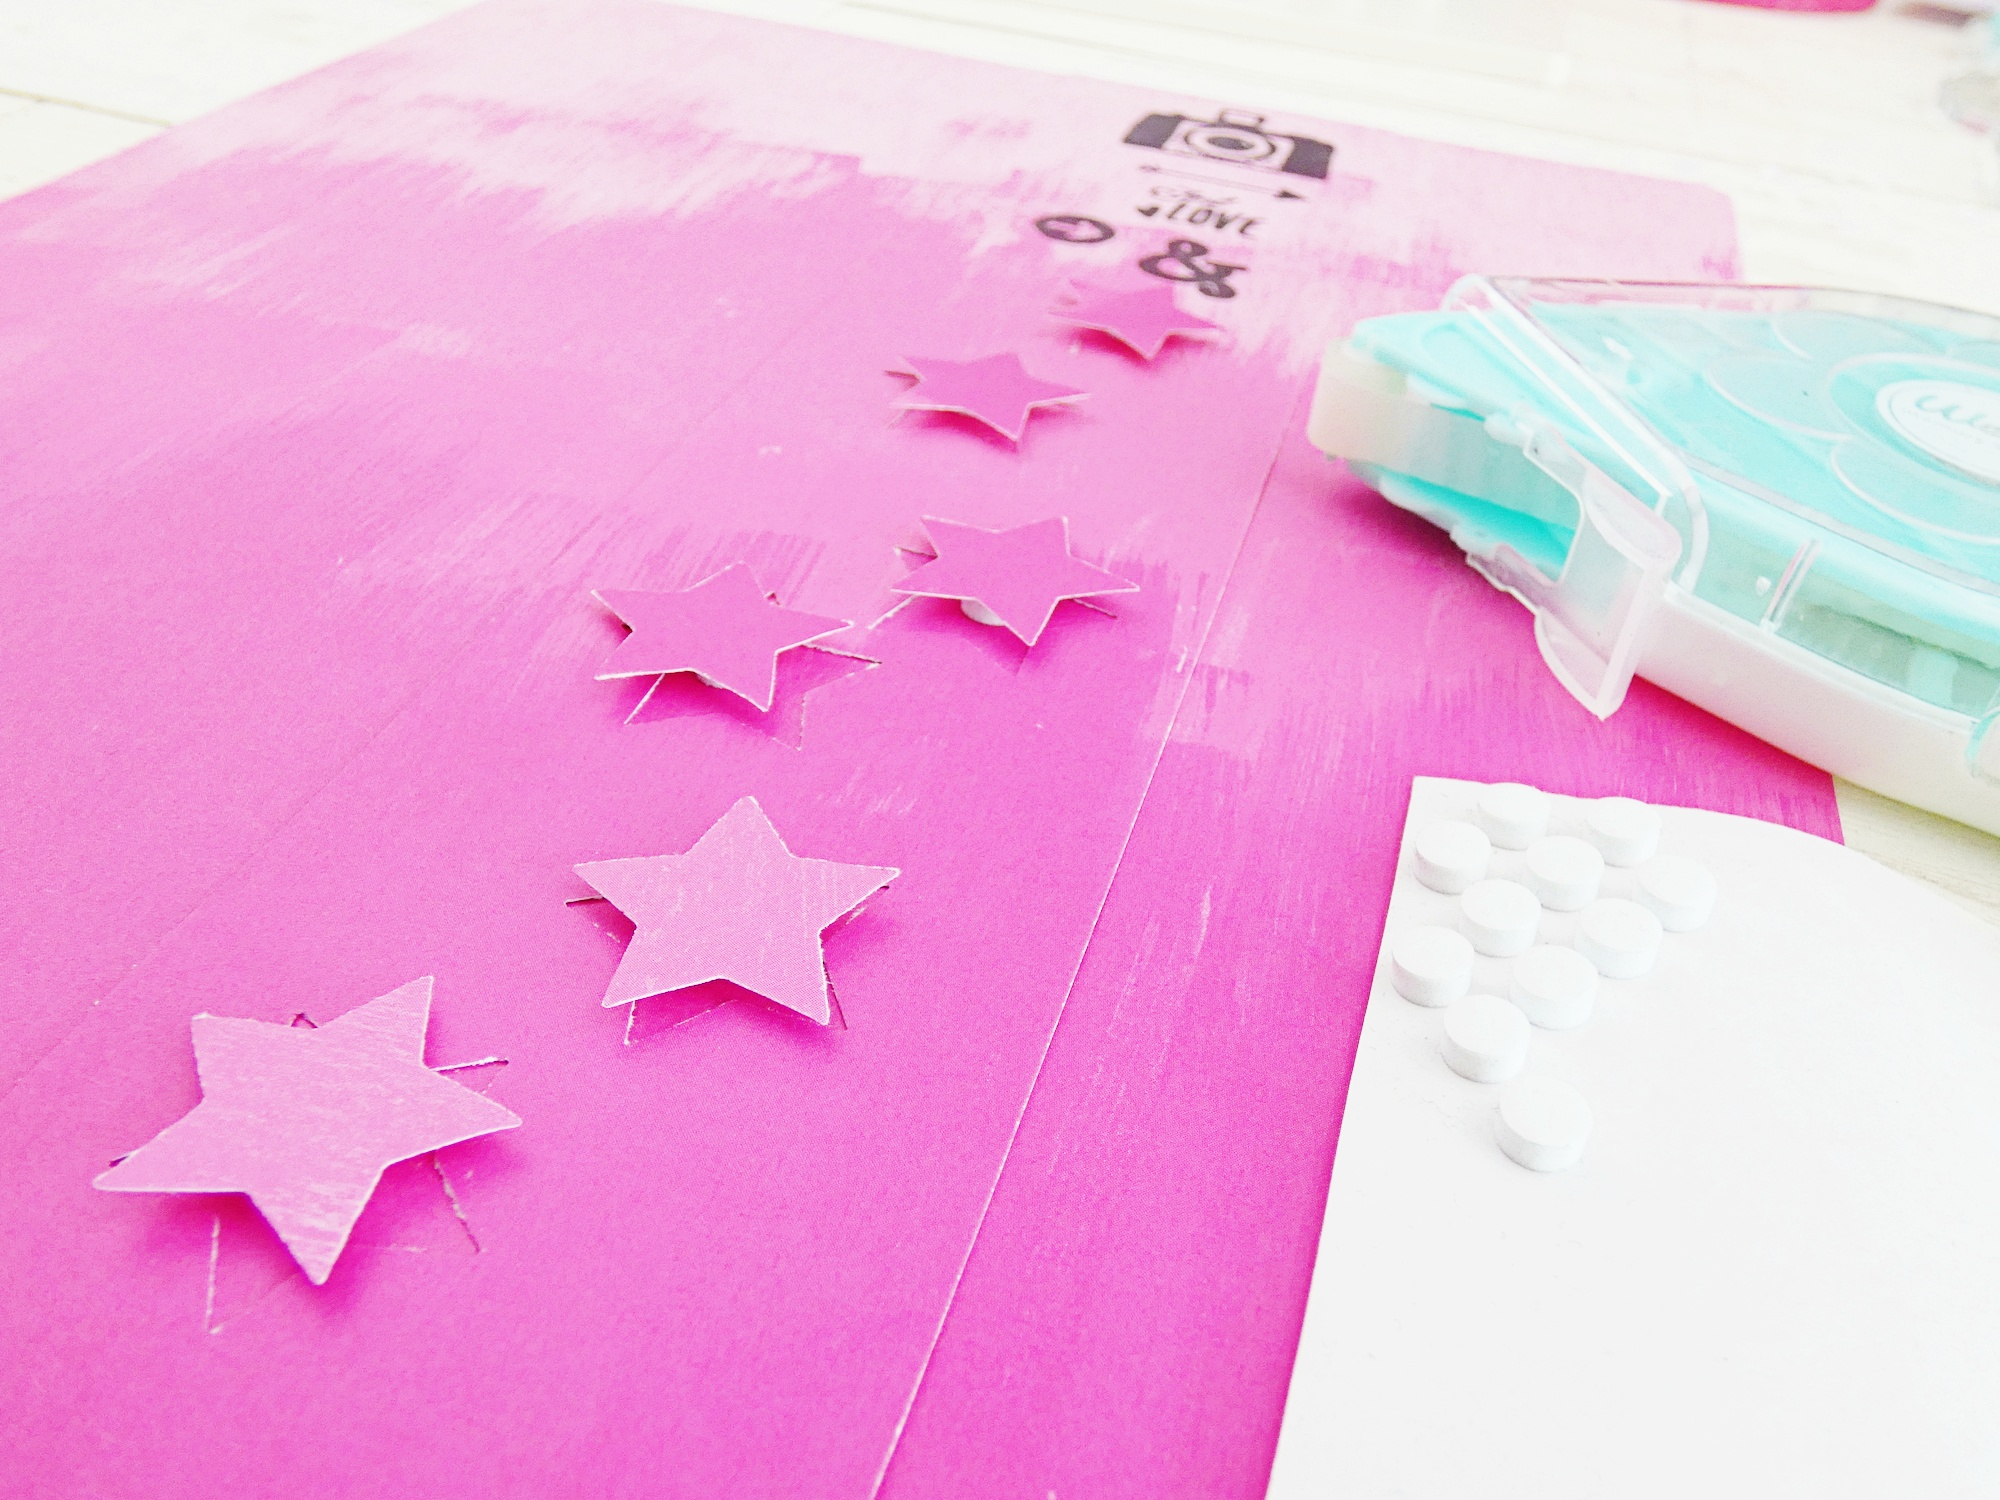 Make DIY scrapbook page embellishments with the We R Memory Keepers 1 Inch Clear Cut Star Punch